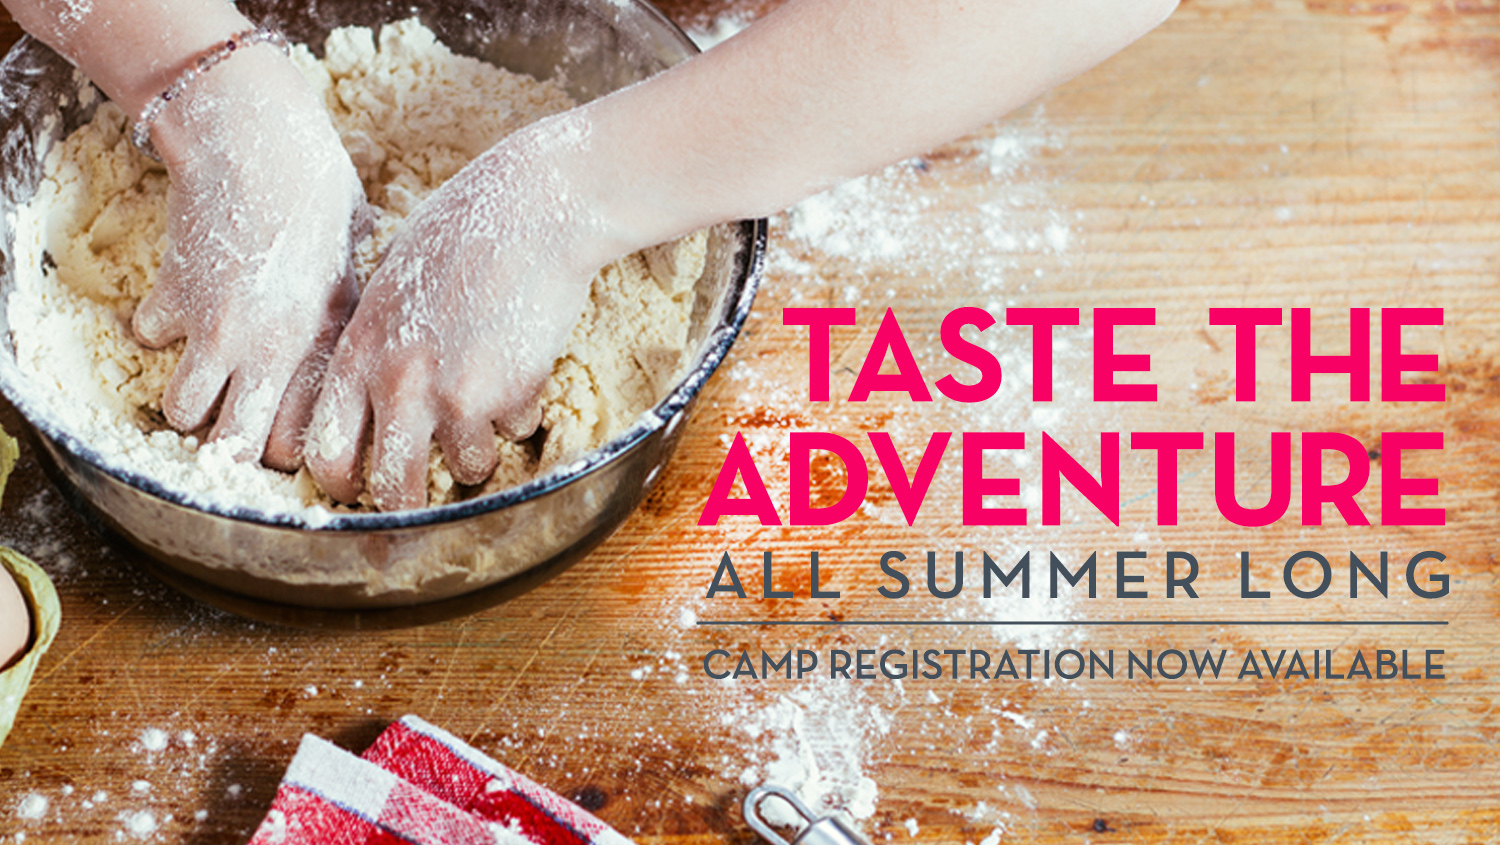 Summer cooking camp 2018 ABC Chefs